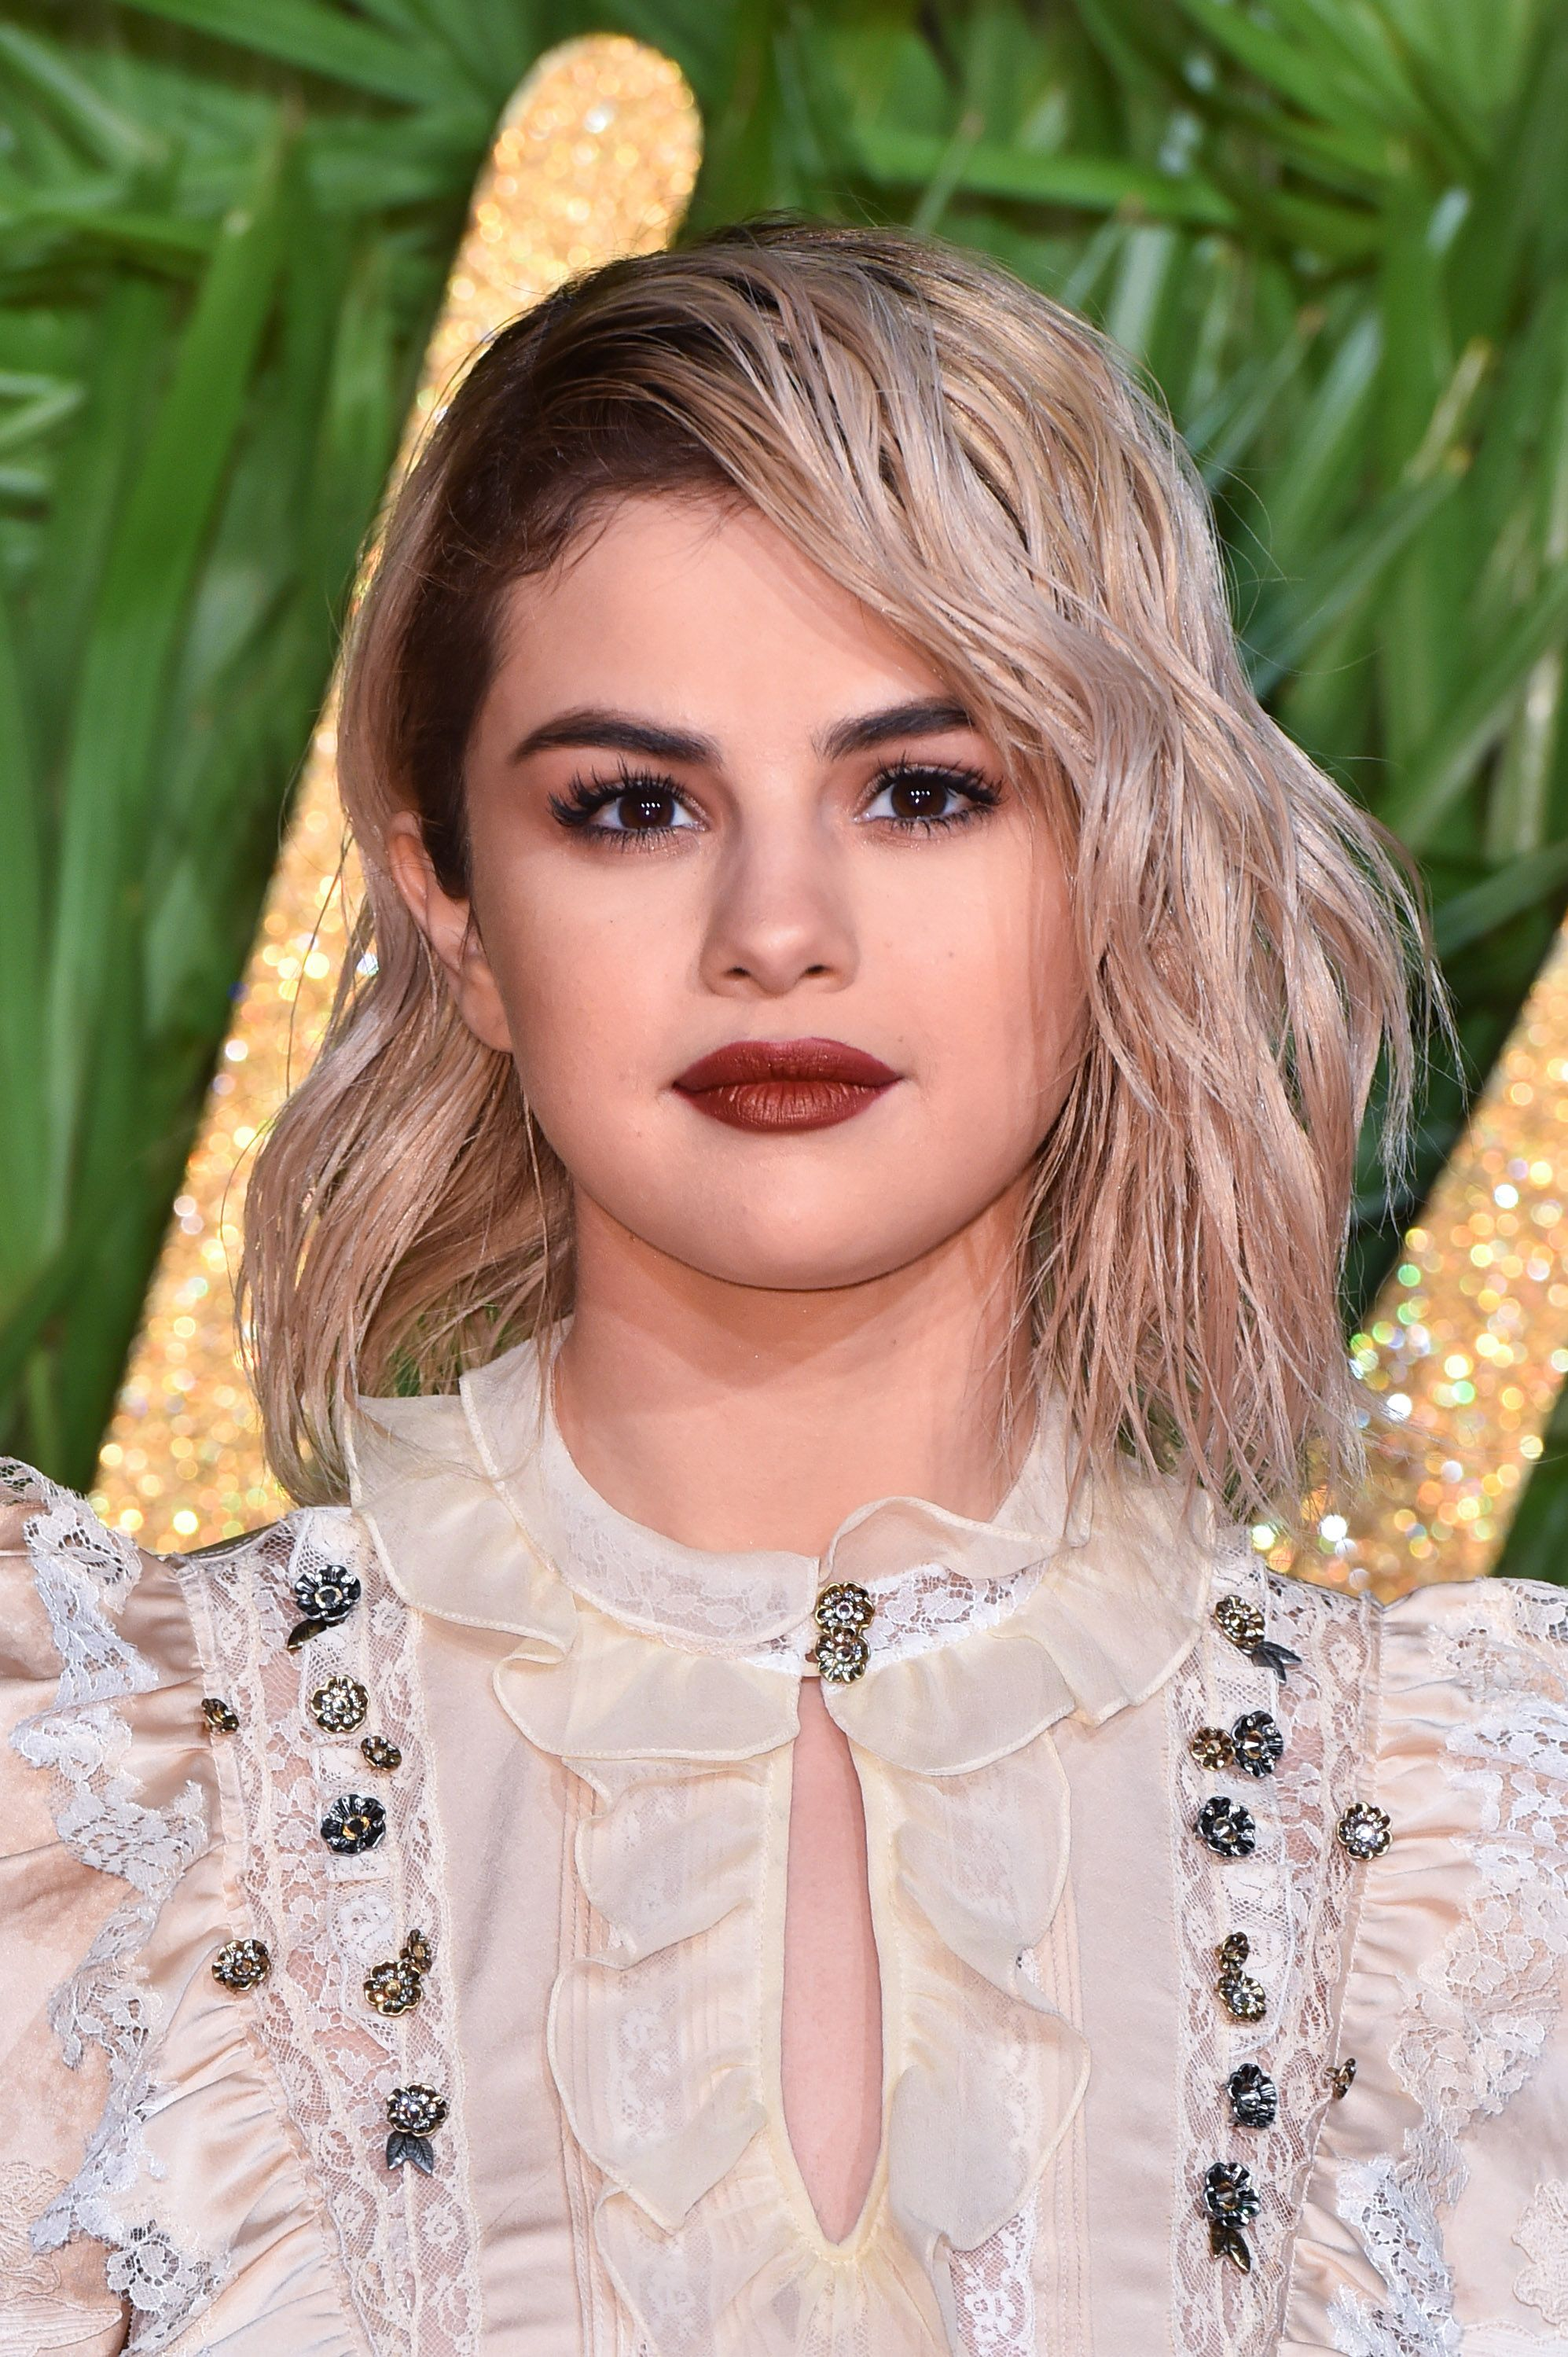 30+ Best Selena Gomez Hairstyles, From Short Hair and Shaved